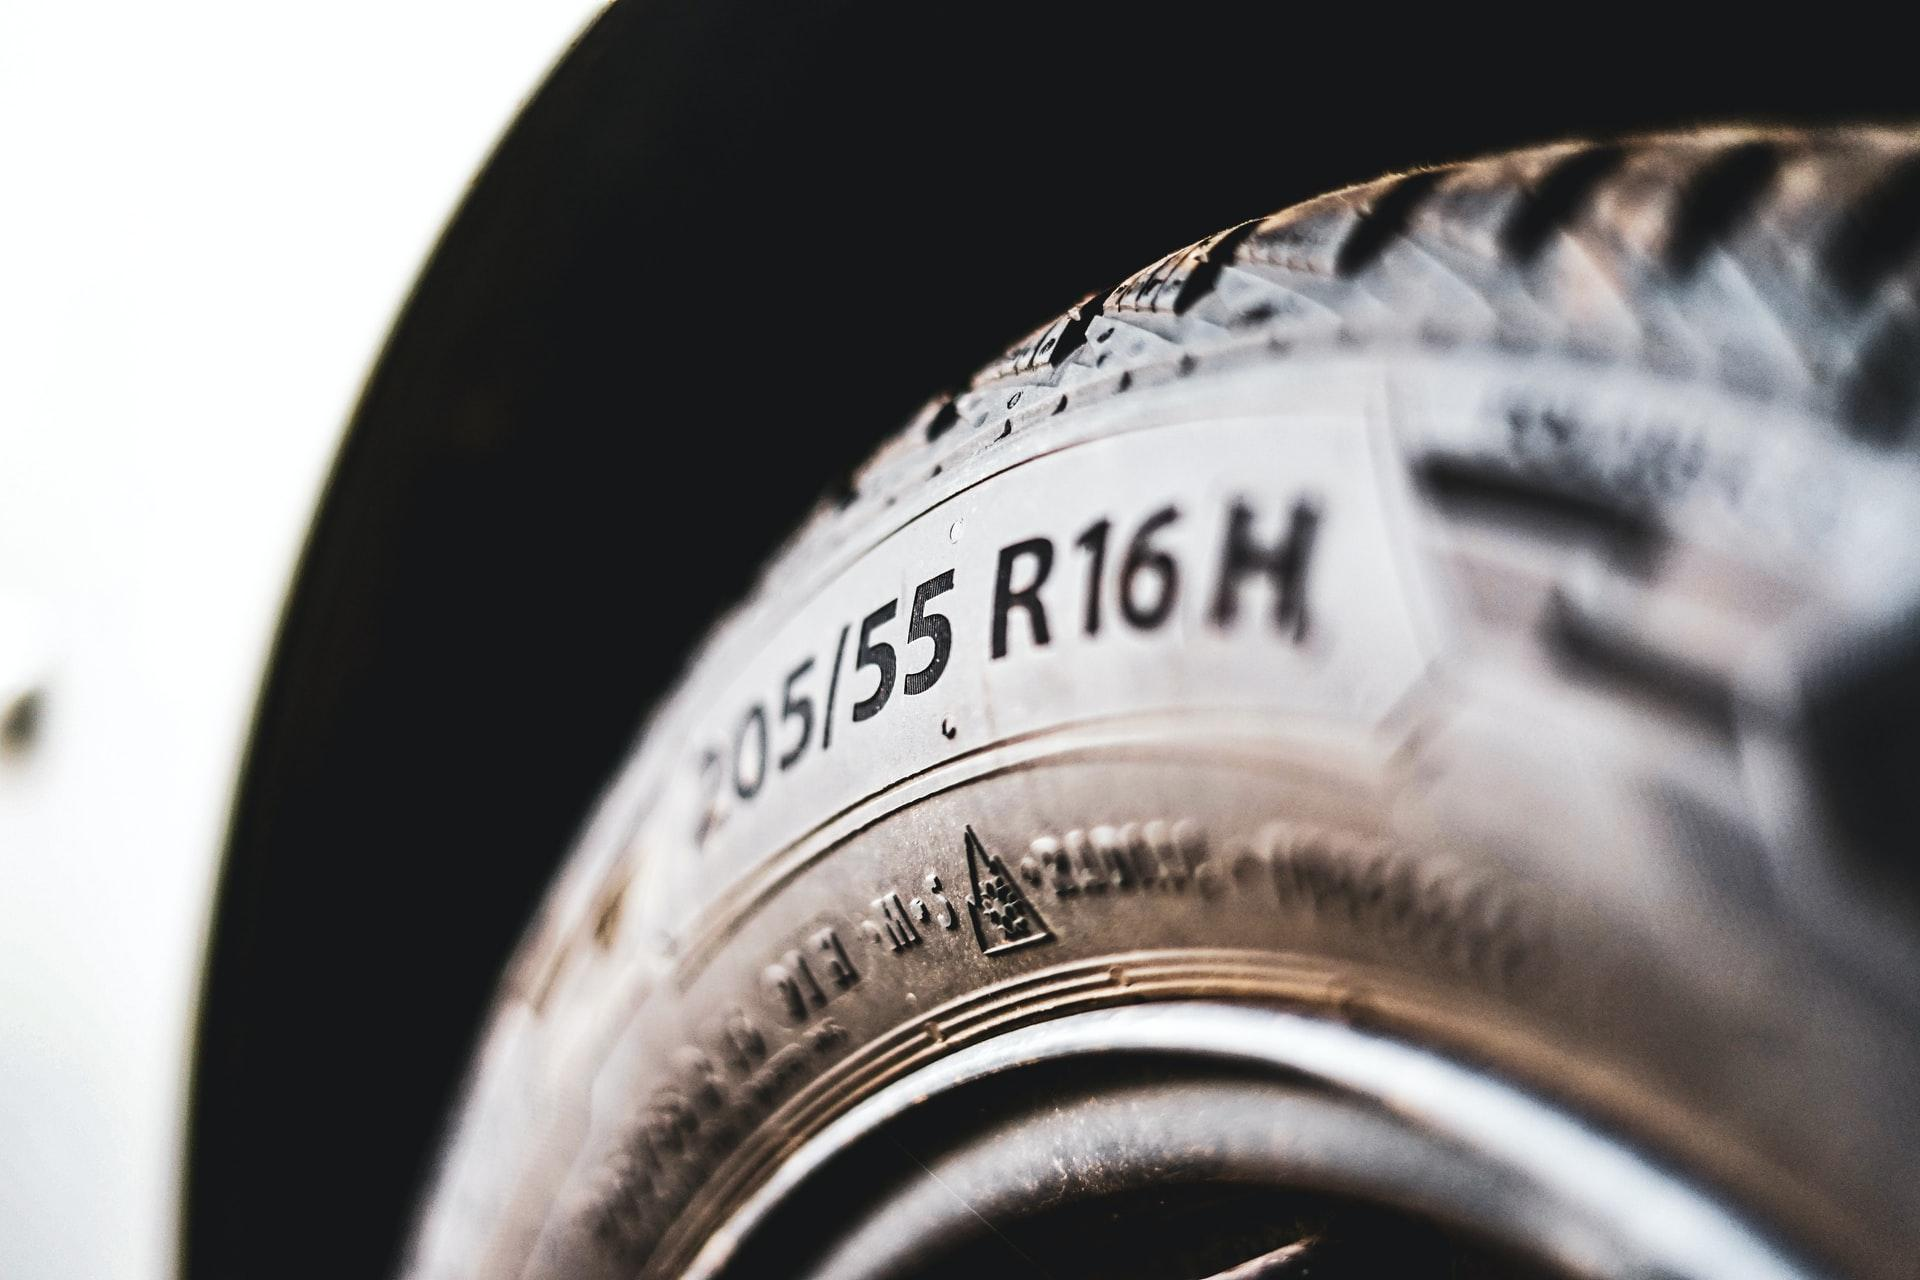 Make Sure Your Tires Are in Good Condition